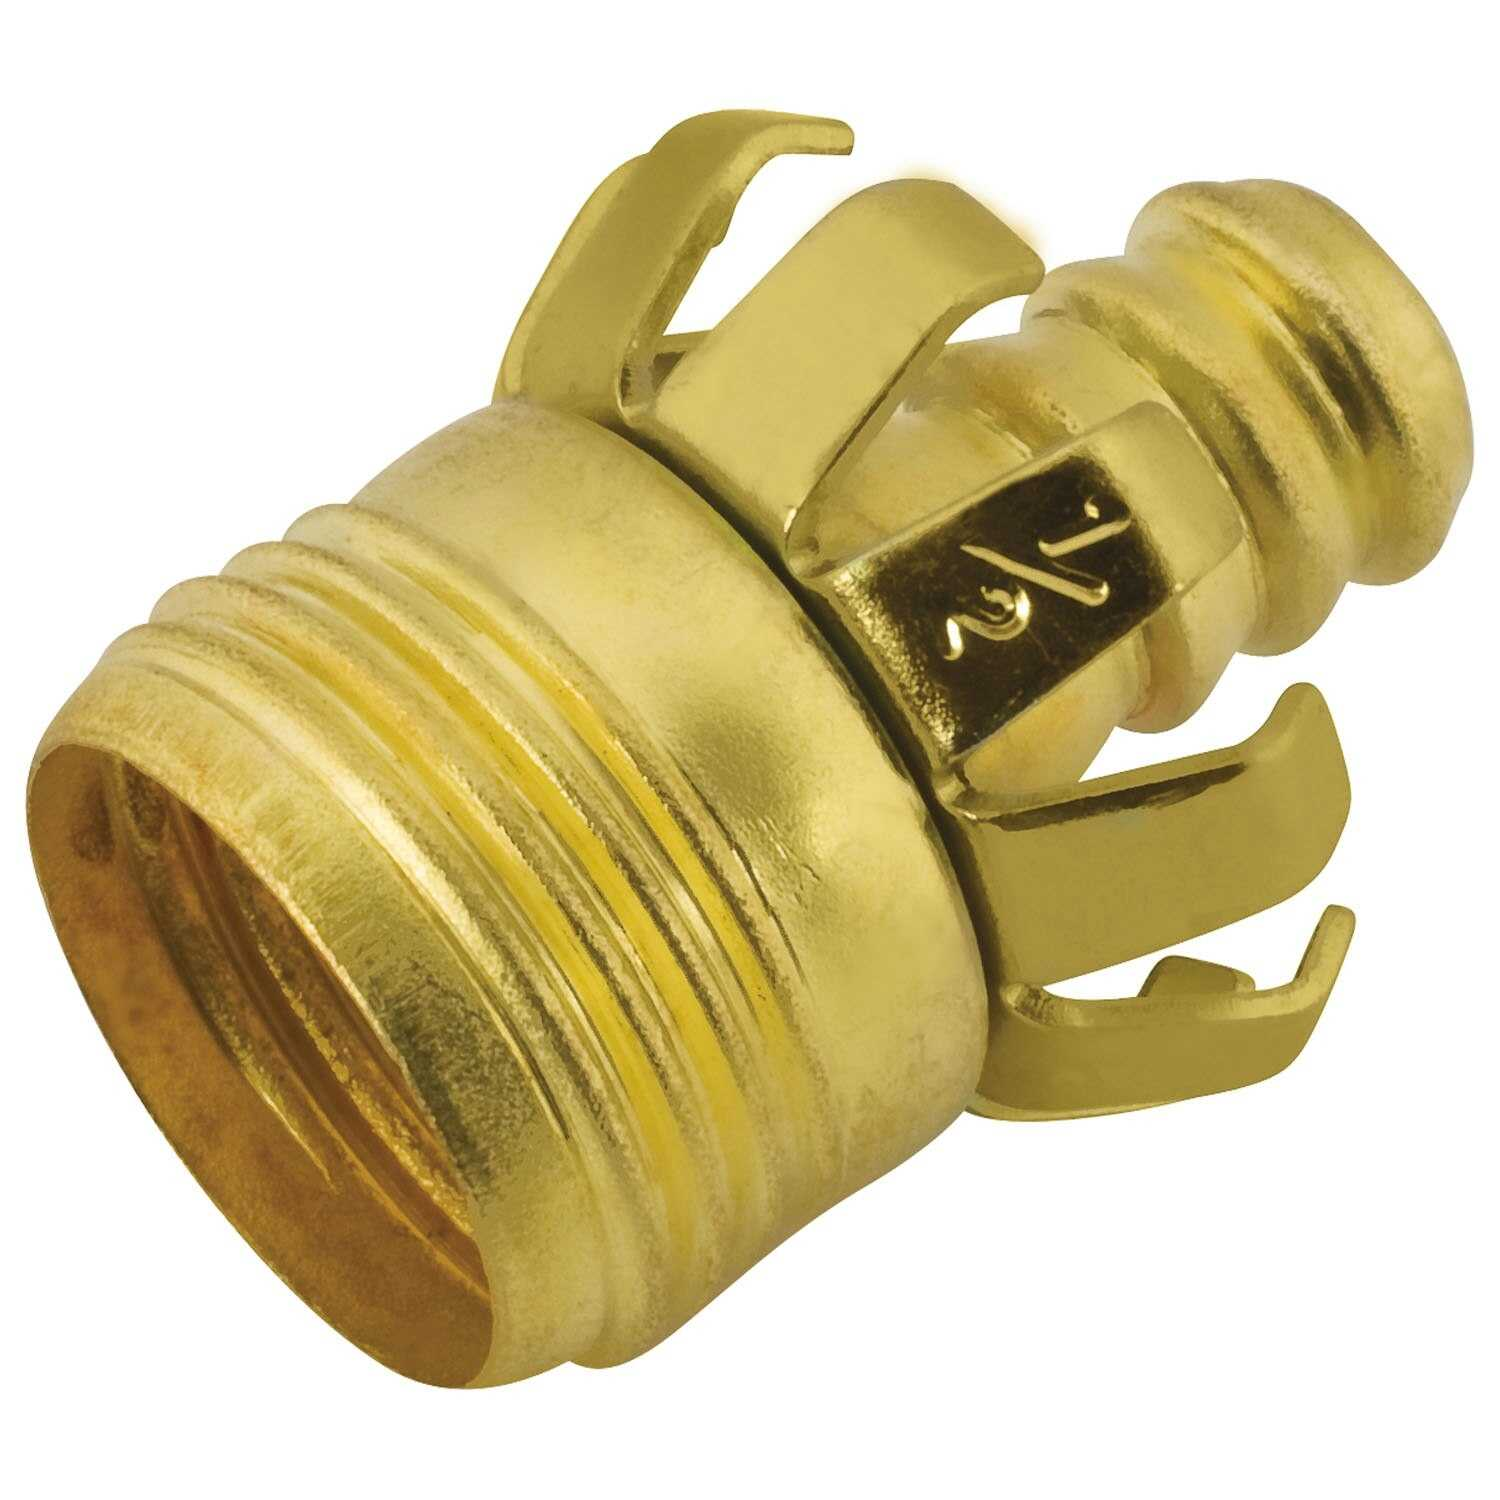 Ace  1/2 in. Metal  Threaded  Male  Clinch Hose Mender Clamp